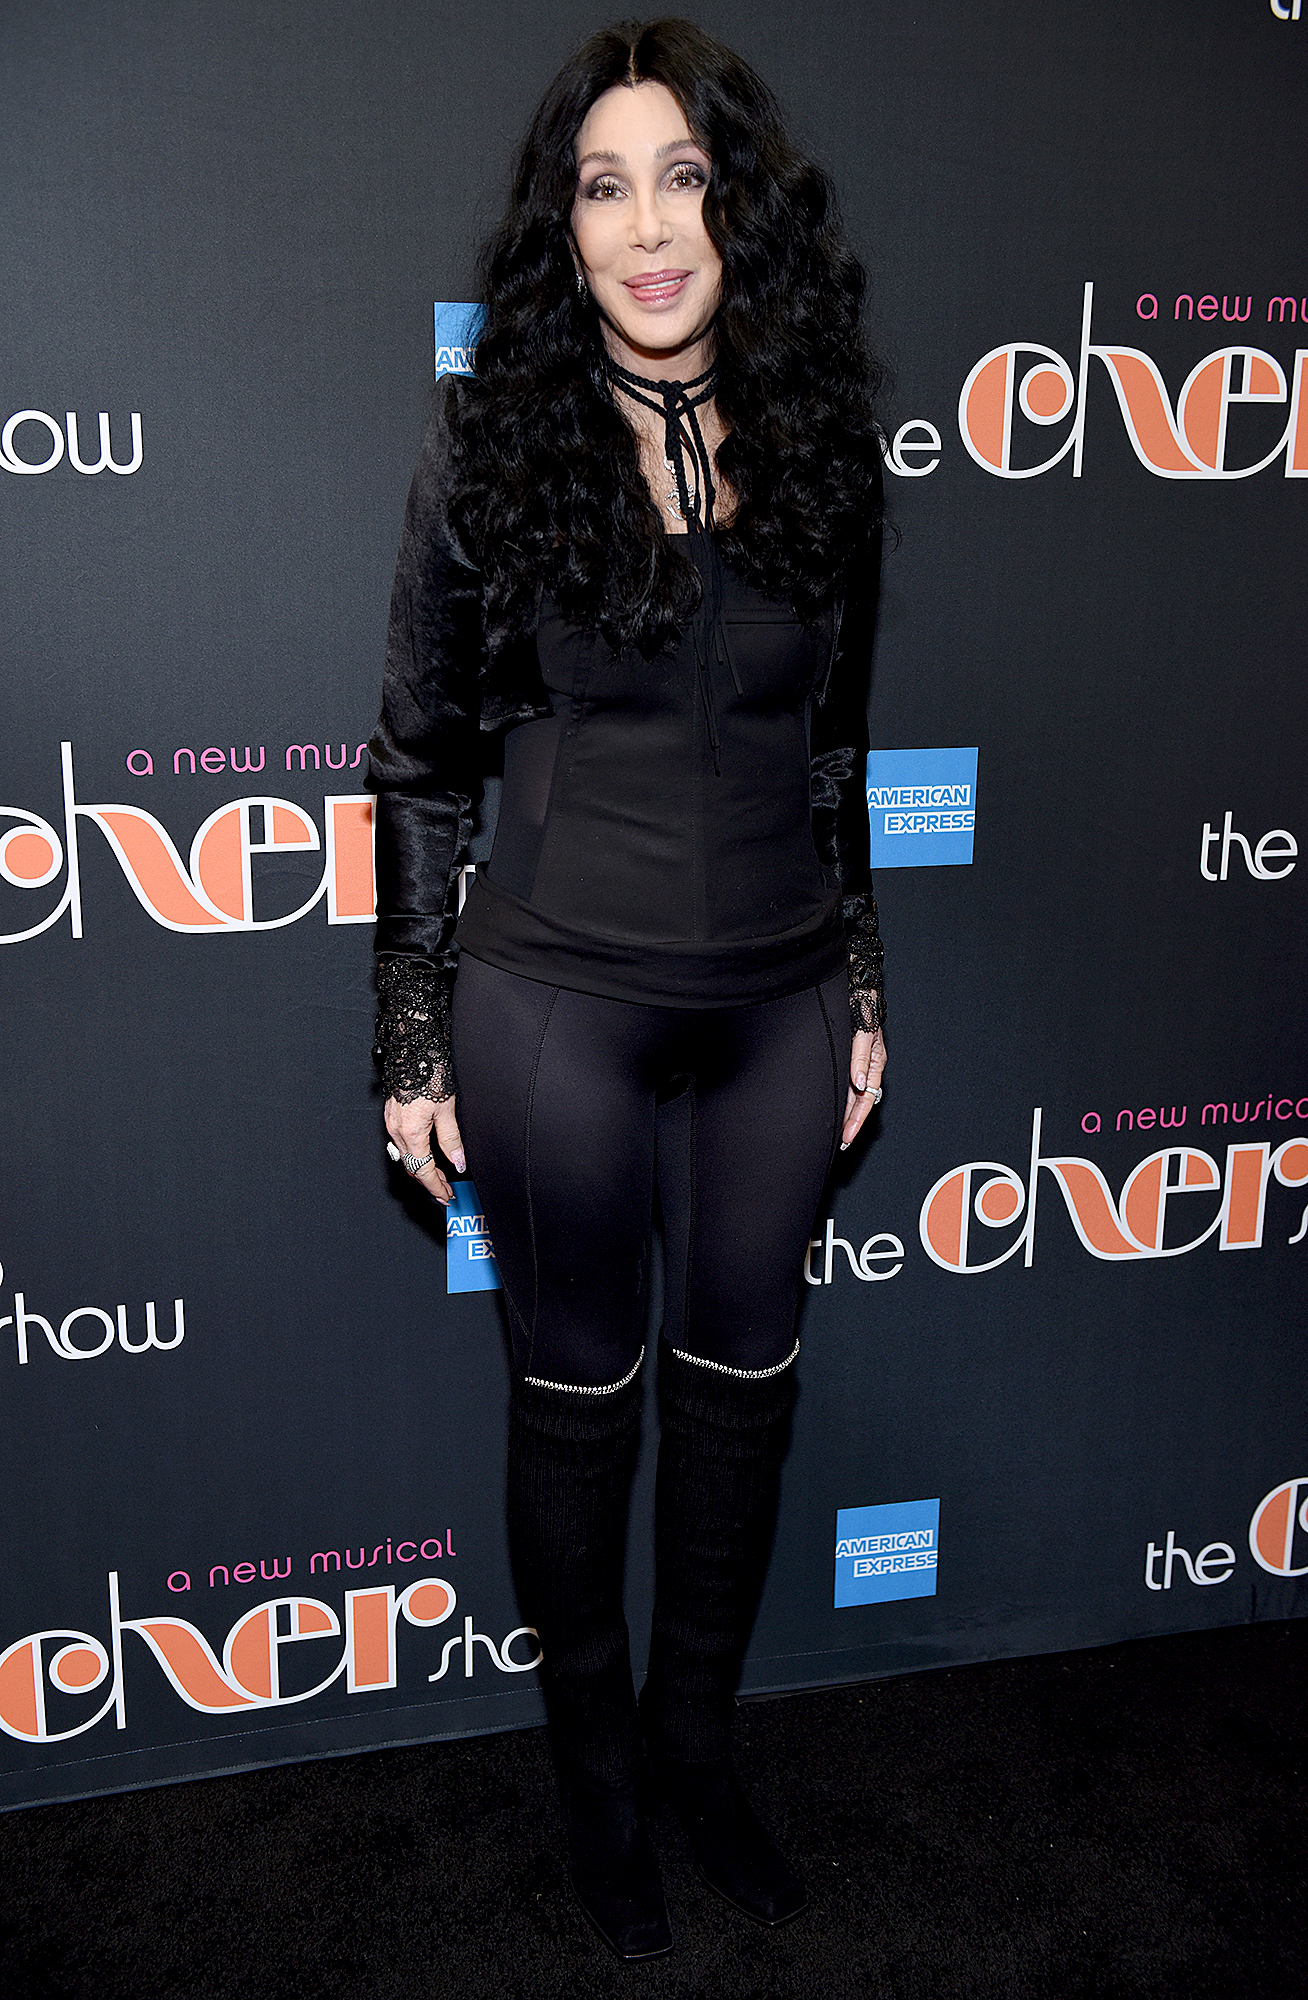 2018-Cher - Attending the Broadway show about her life, the Mask star walked the carpet in an all-black pants number with subtle lace details.